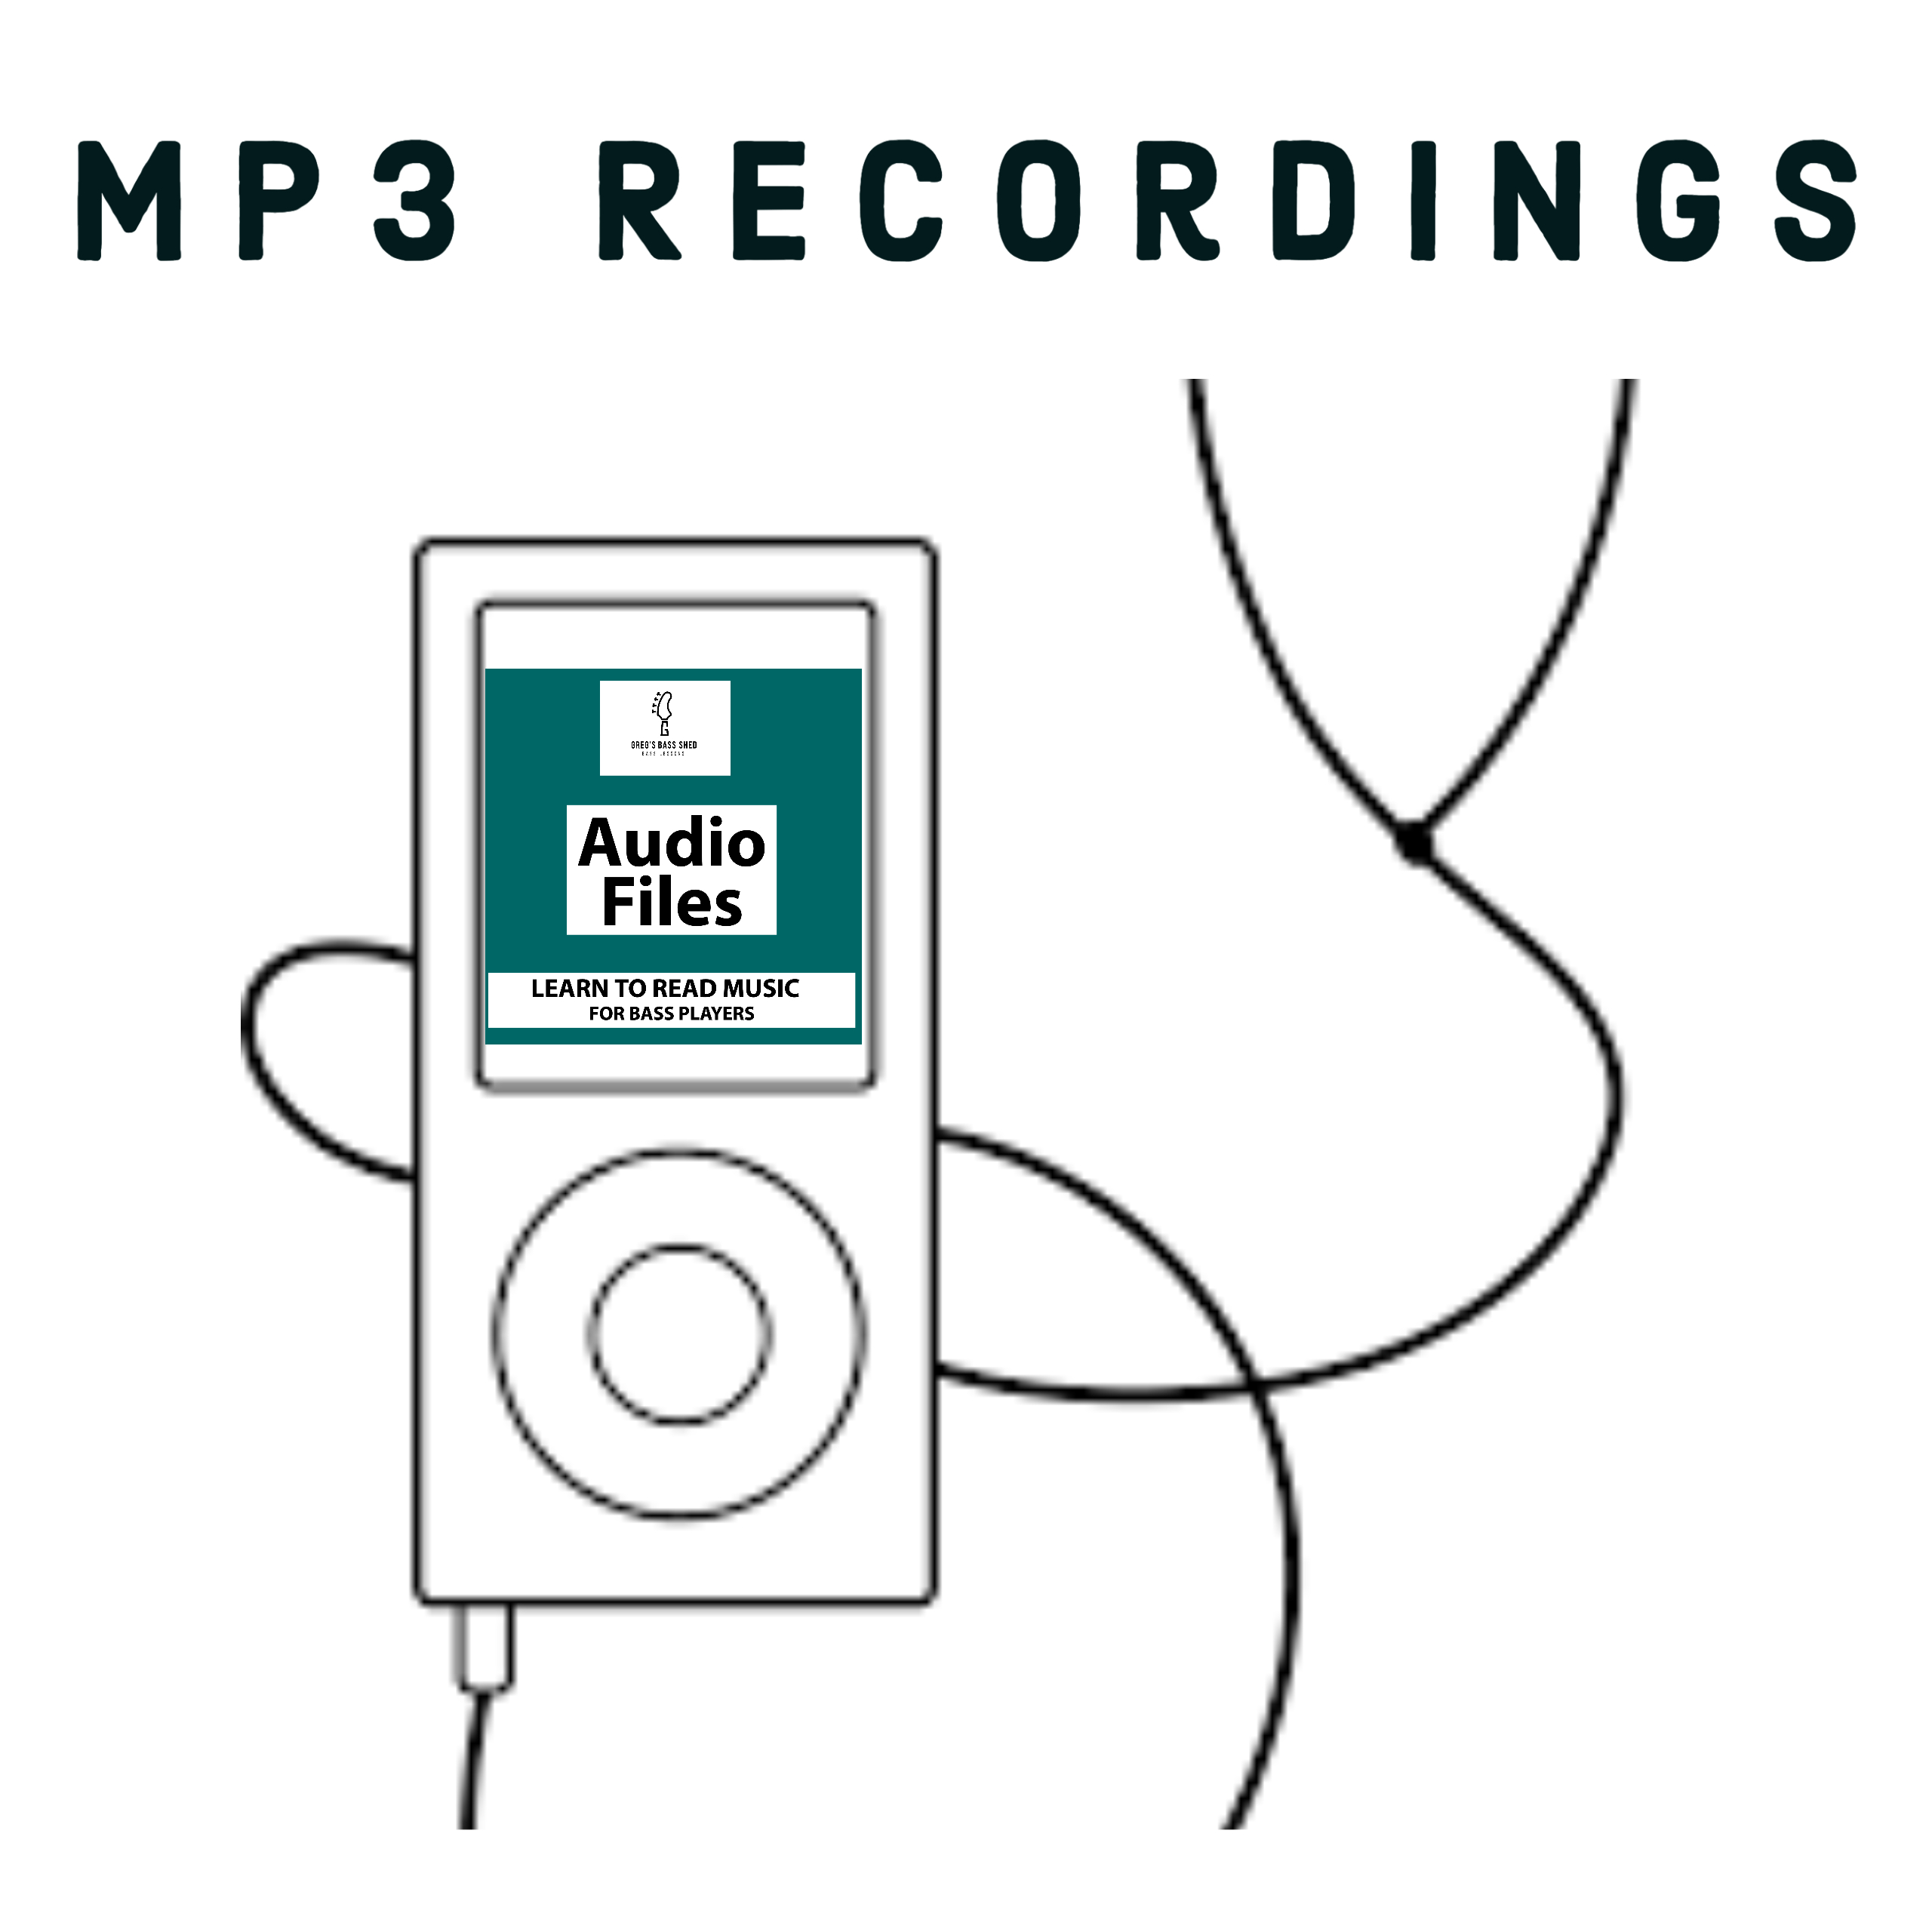 picture of mp3 players with audio examples forReading Music Course for bass players